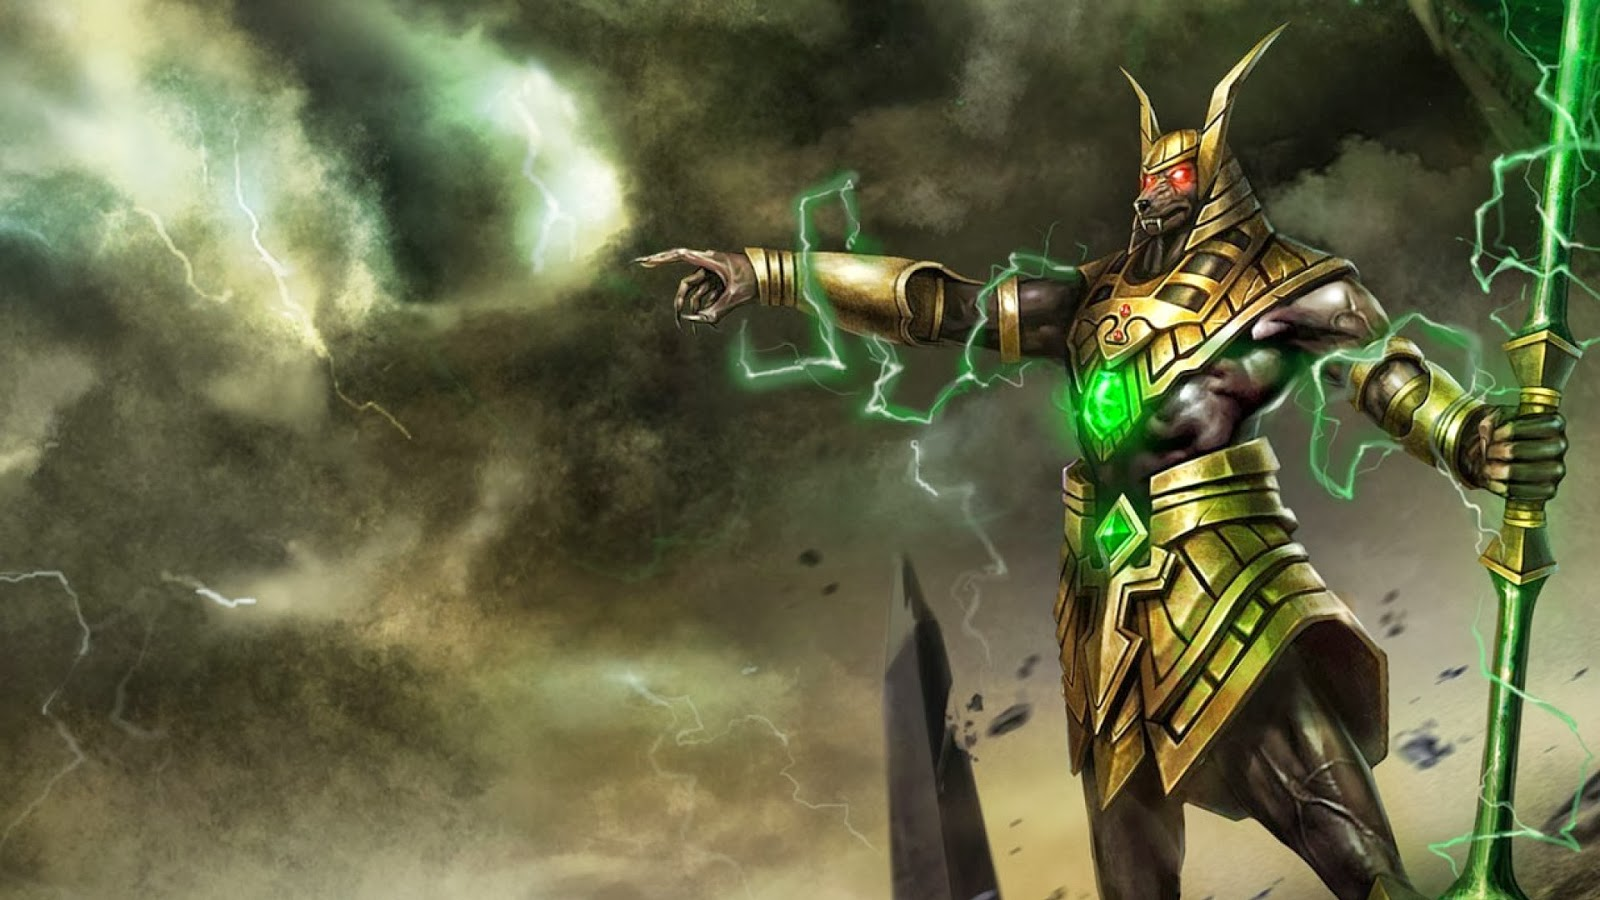 essay on league of legends League of legends is a multiplayer online battle arena video game video game developed and published by riot games for microsoft windows and mac os x, inspired by the mod defense of the ancients for the video game warcraft iii.